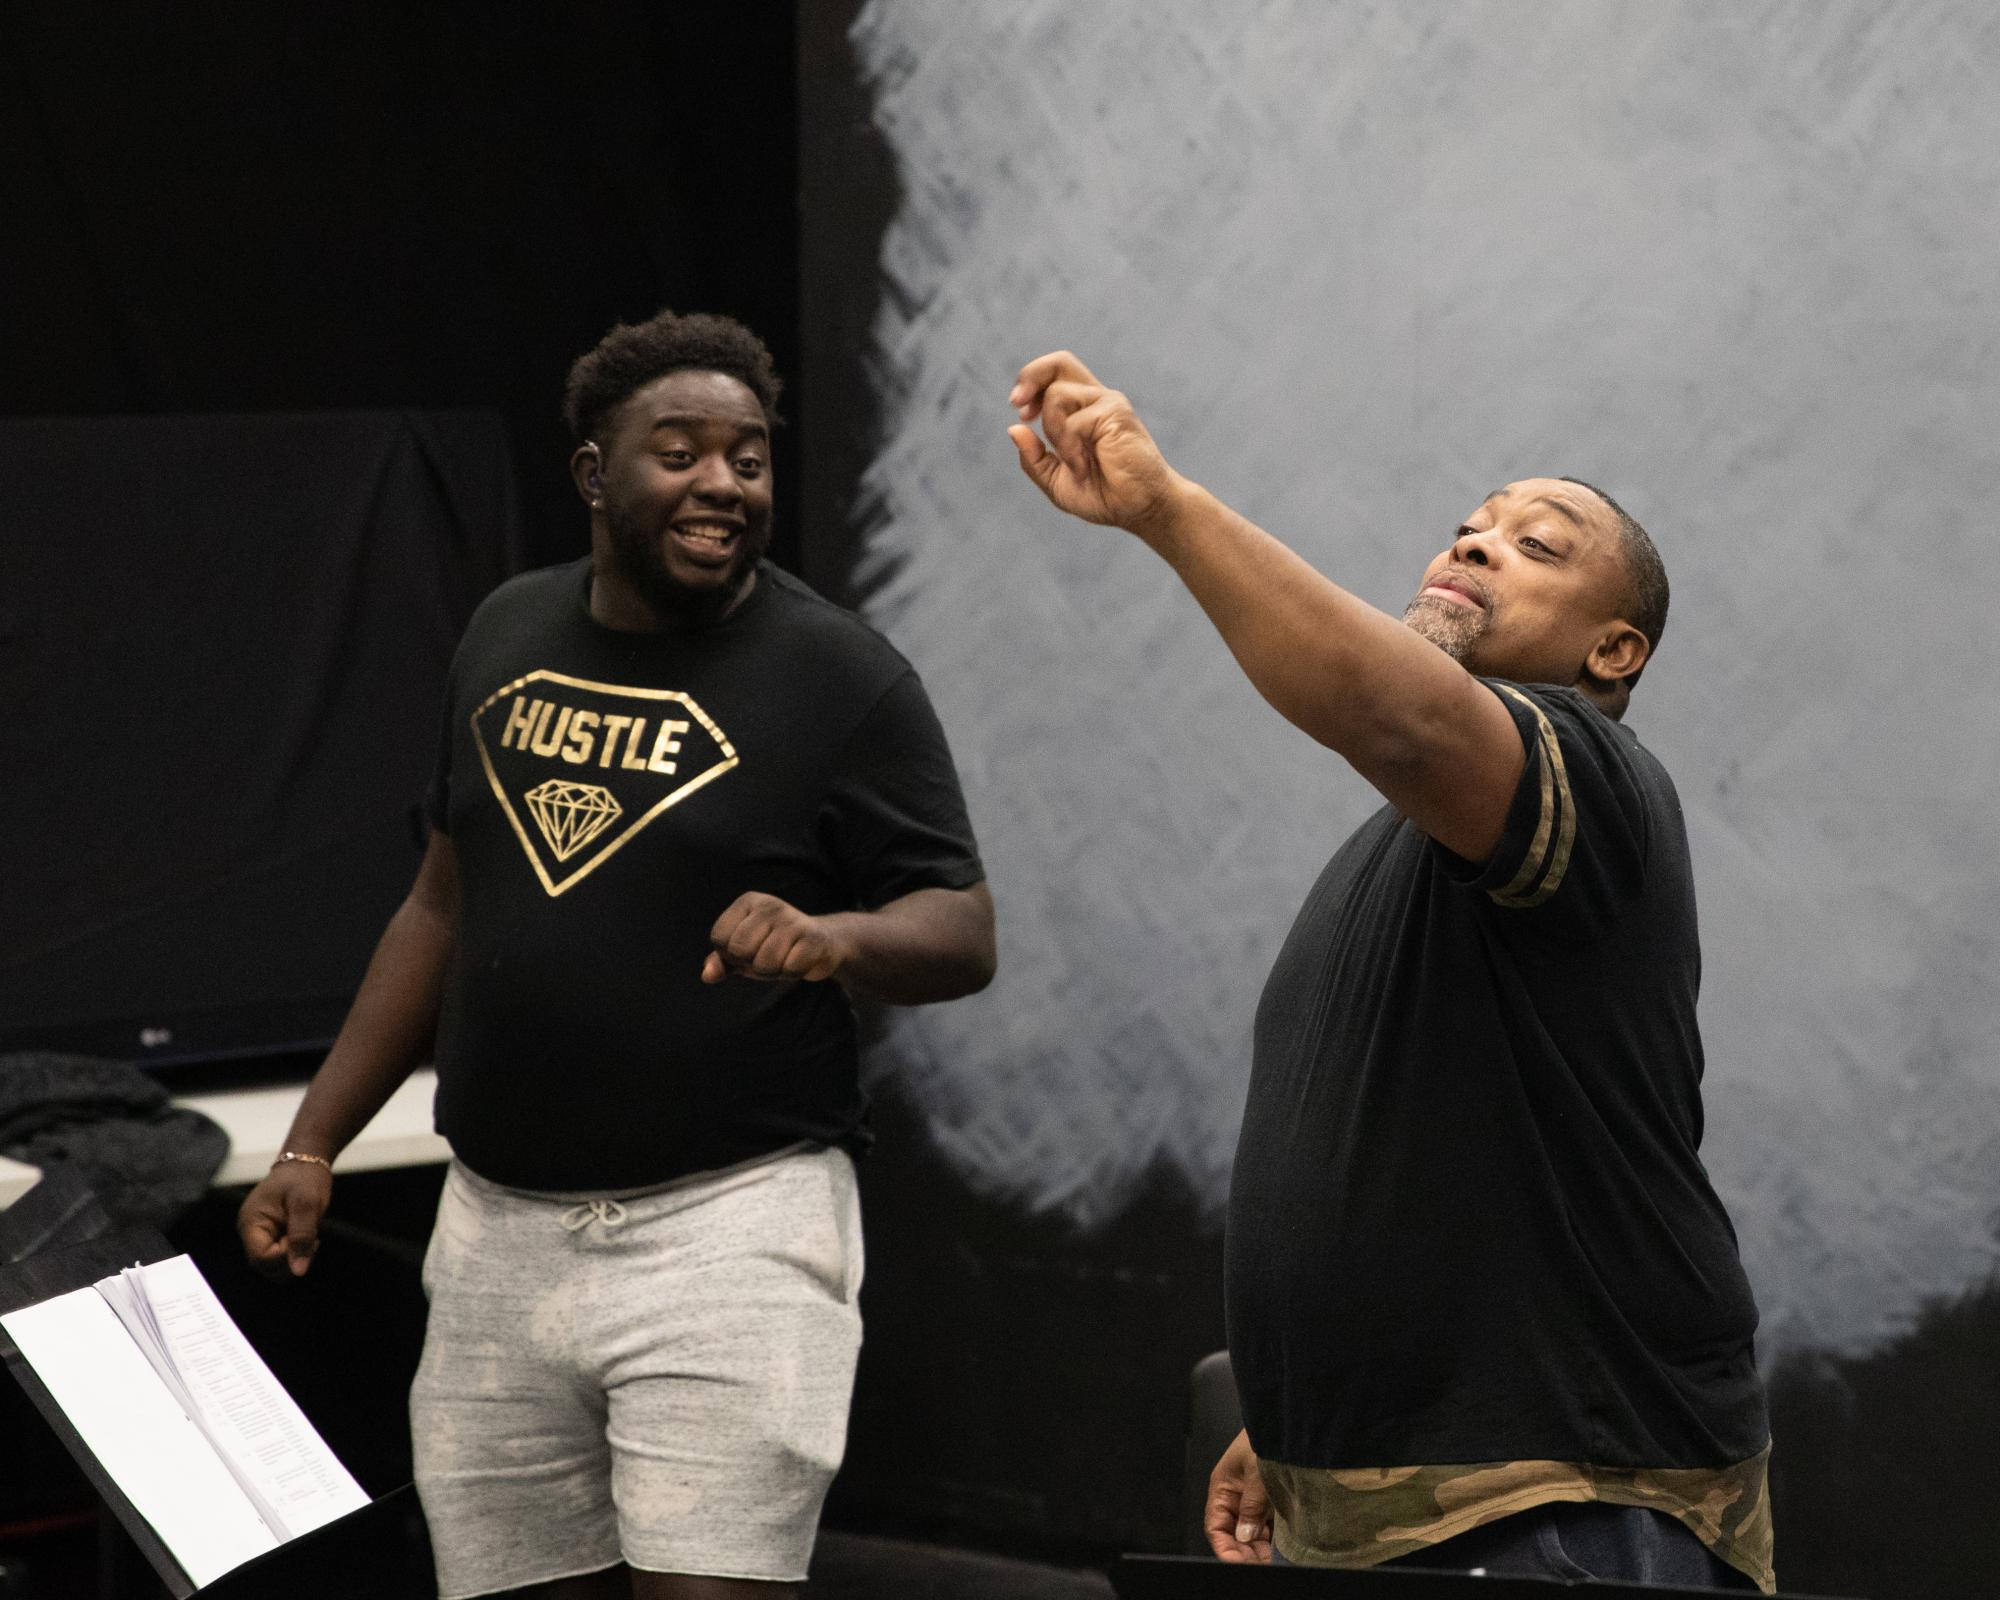 Marquawn Holmes (left) and Troy Chapman (right) rehearse for NTID's theater performance, Fences, in Henrietta, N.Y. on Feb. 4, 2019. Photo by Jesse Wolfe